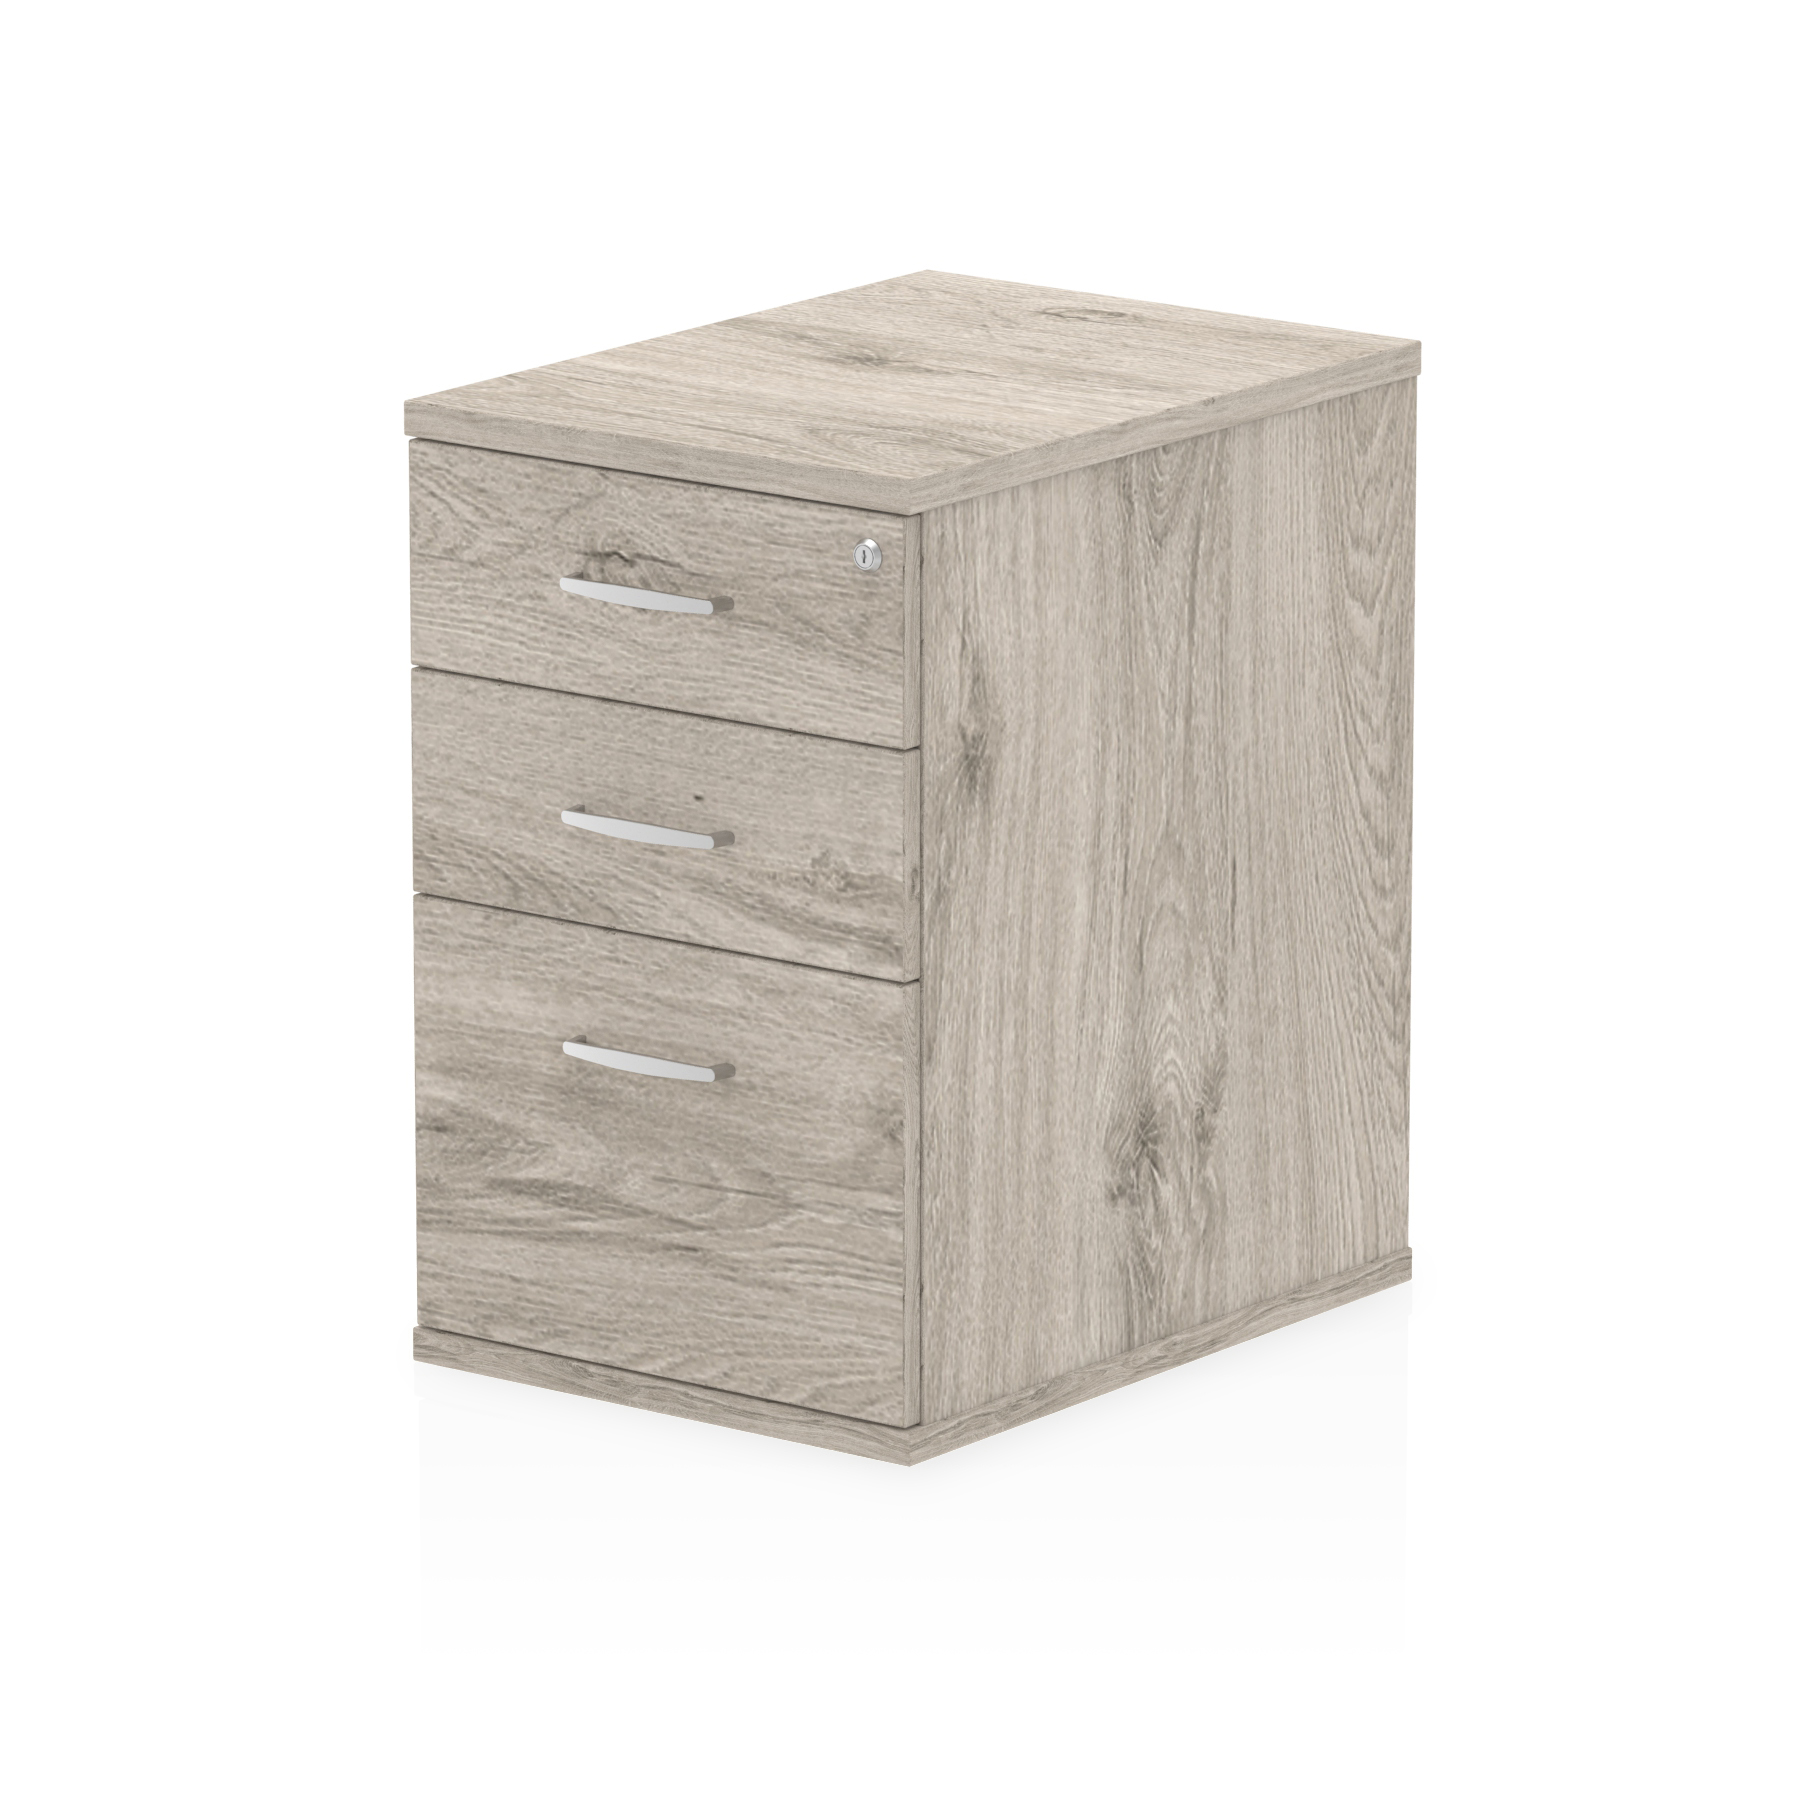 Trexus Desk High 3 Drawer 600D Pedestal 425x600x730mm Grey Oak Ref I003221